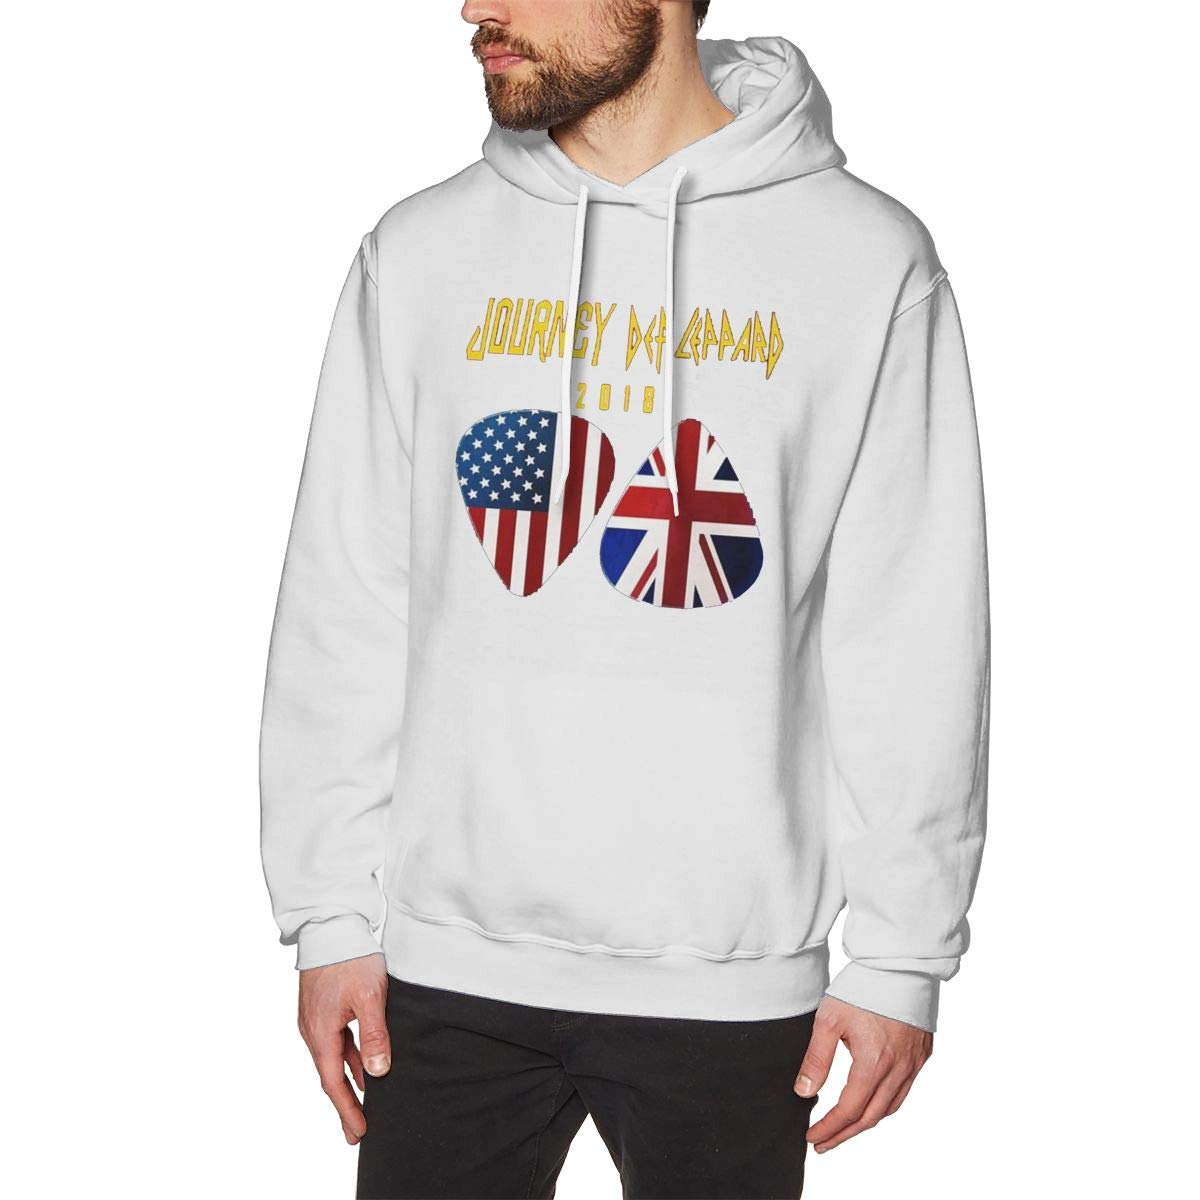 Mens Hooded Sweatshirt National Flag Oversized Classic Print Casual White 3XL